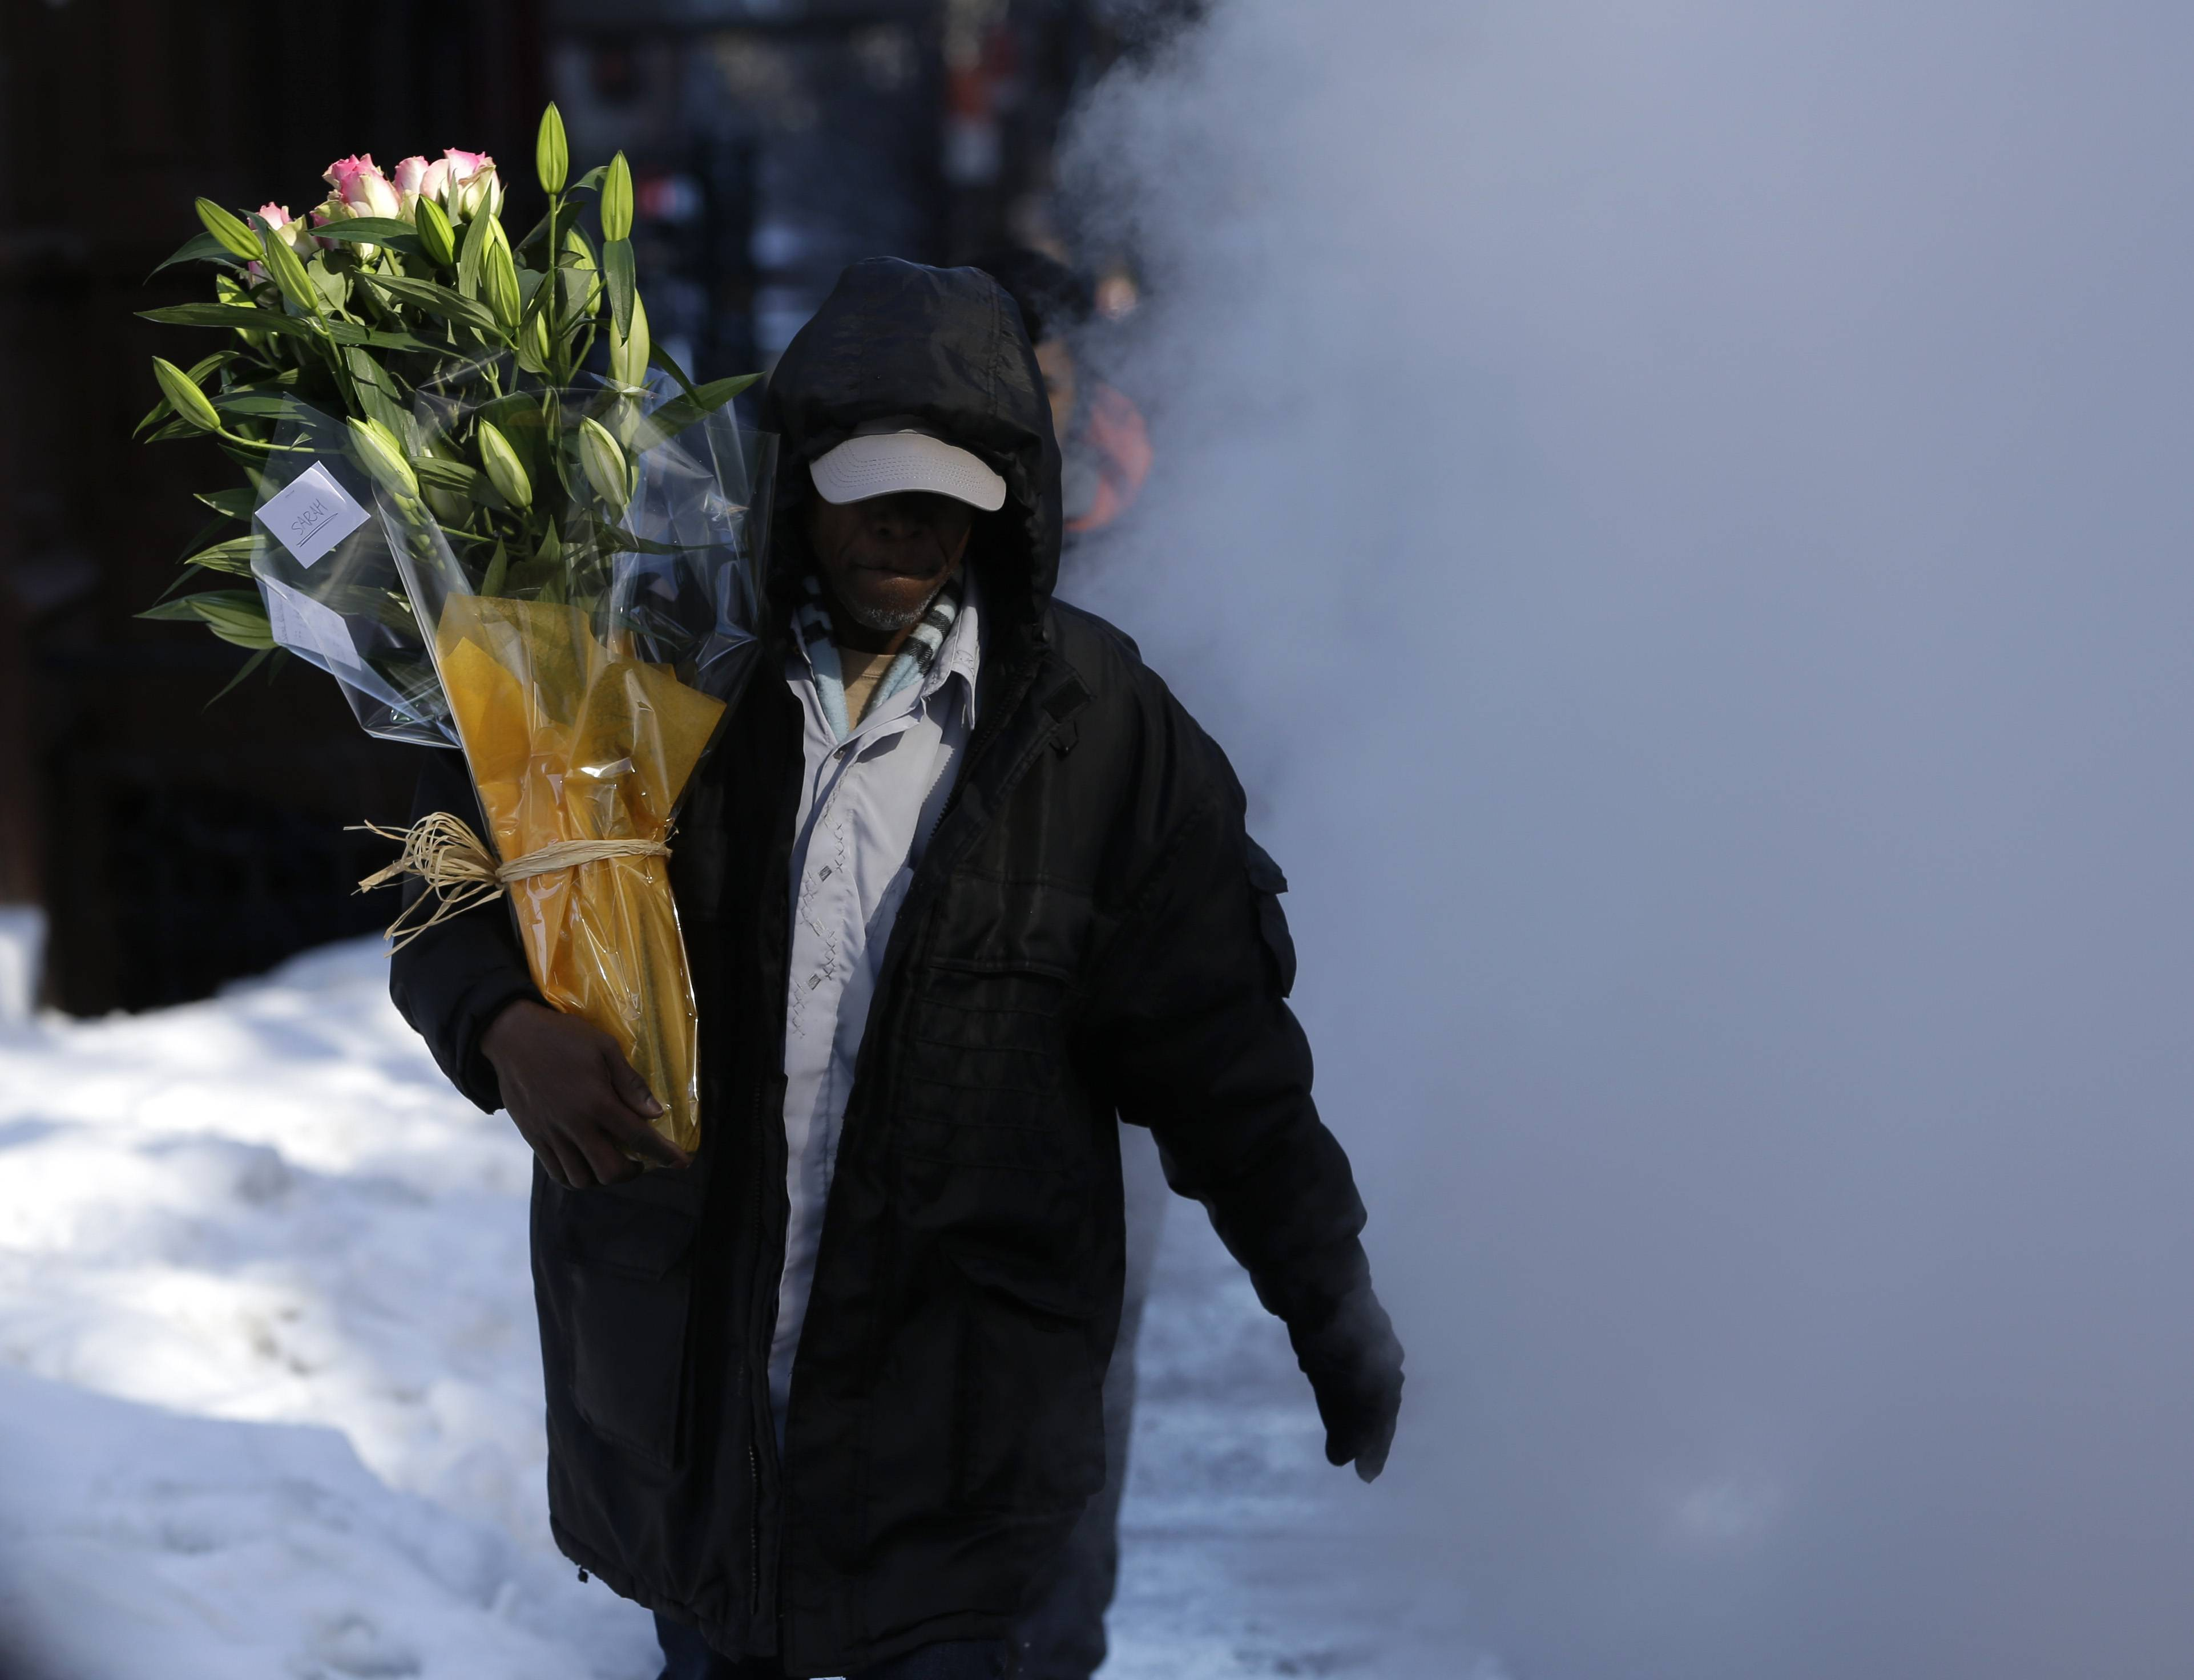 A man delivering flowers walks through a cloud of steam on a snowy street in New York, Friday, Feb. 14, 2014. Commuters faced slick roads on Friday after yet another winter storm brought snow and ice to the East Coast, leaving at least 24 people dead.